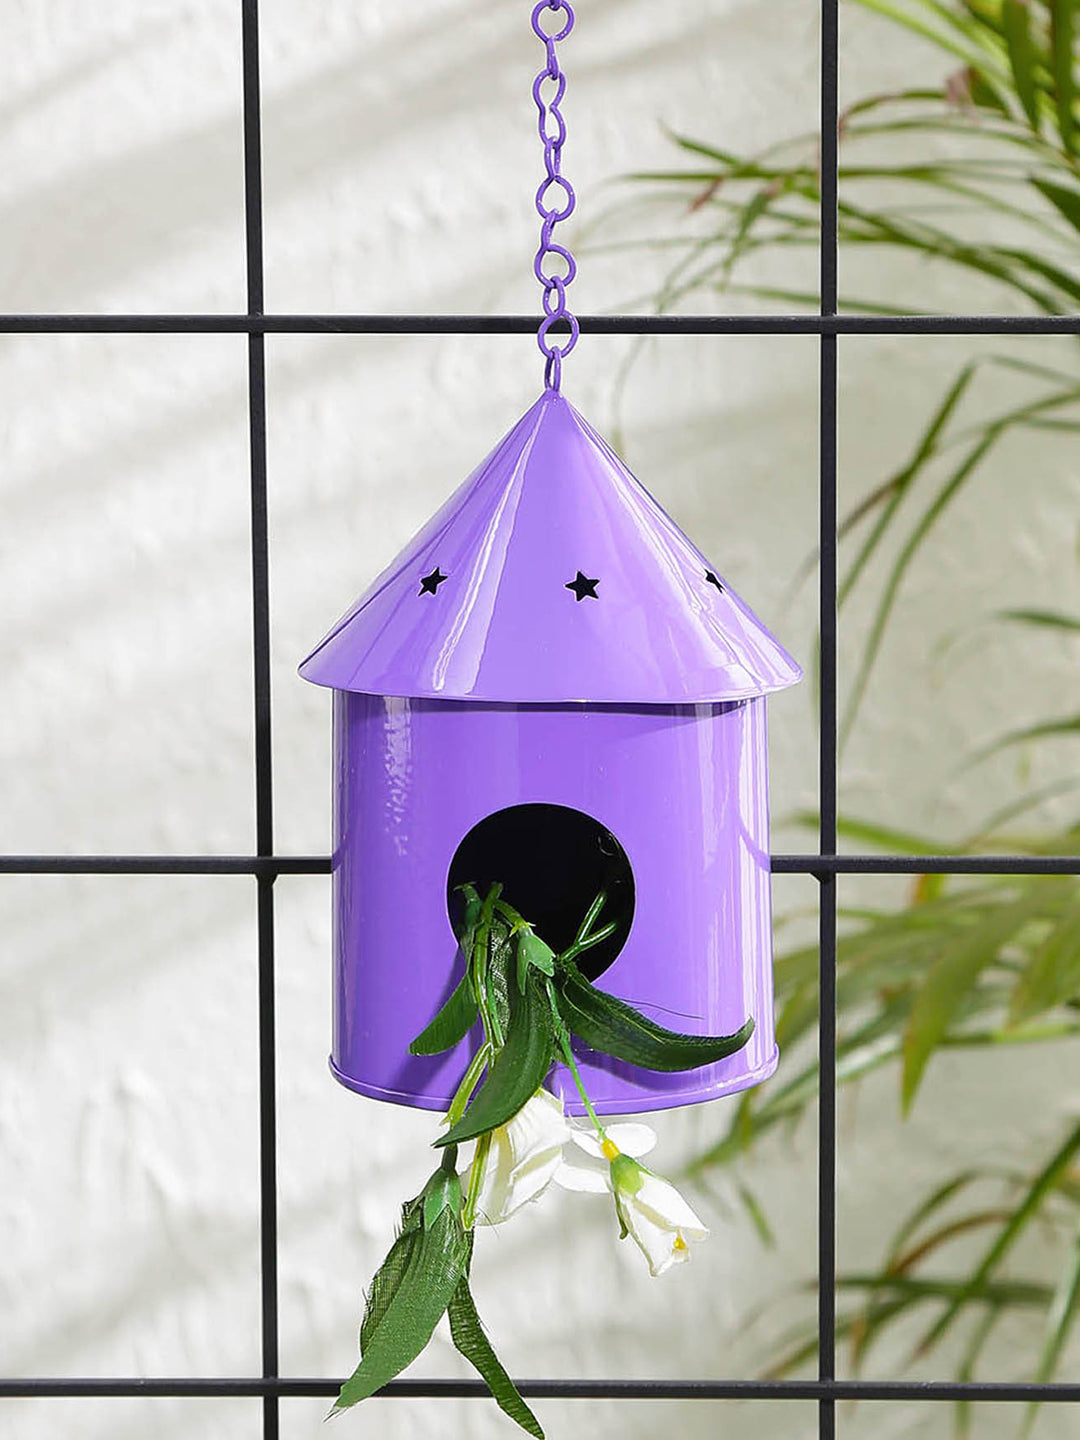 Round Hut Bird House Purple